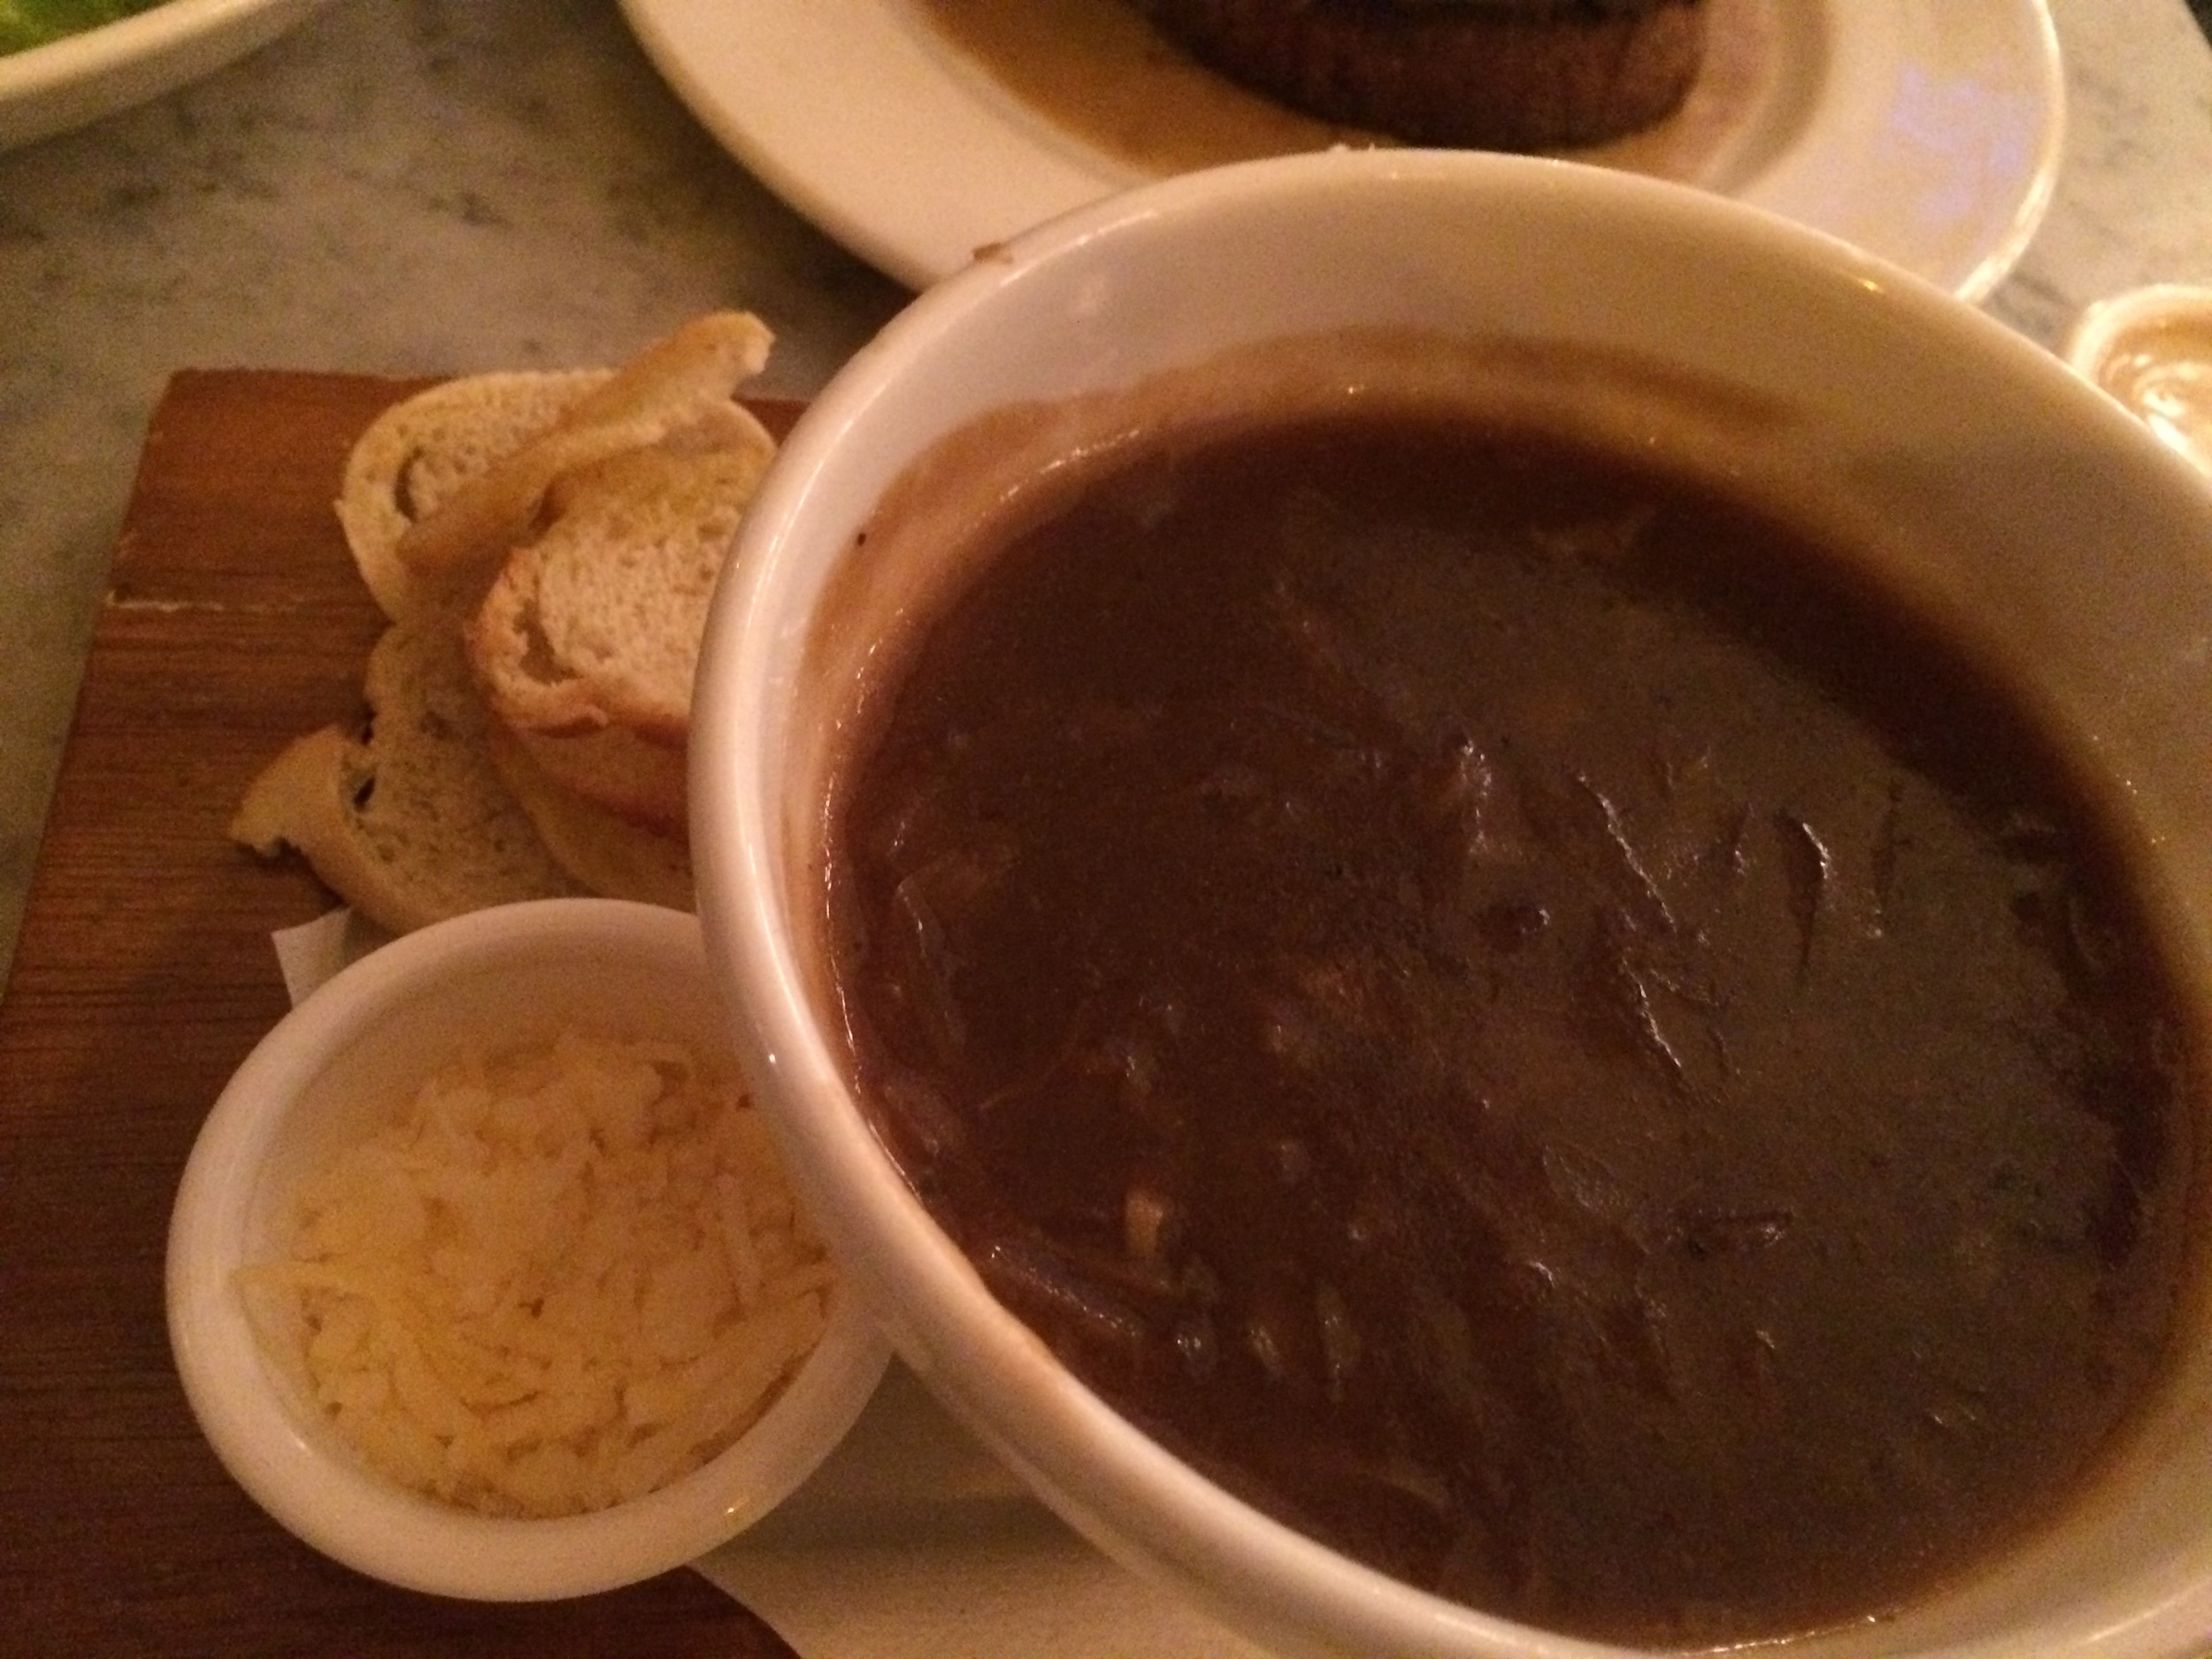 Probably the best french onion soup I've ever had - lots of caramelized onions and sweet undertones.